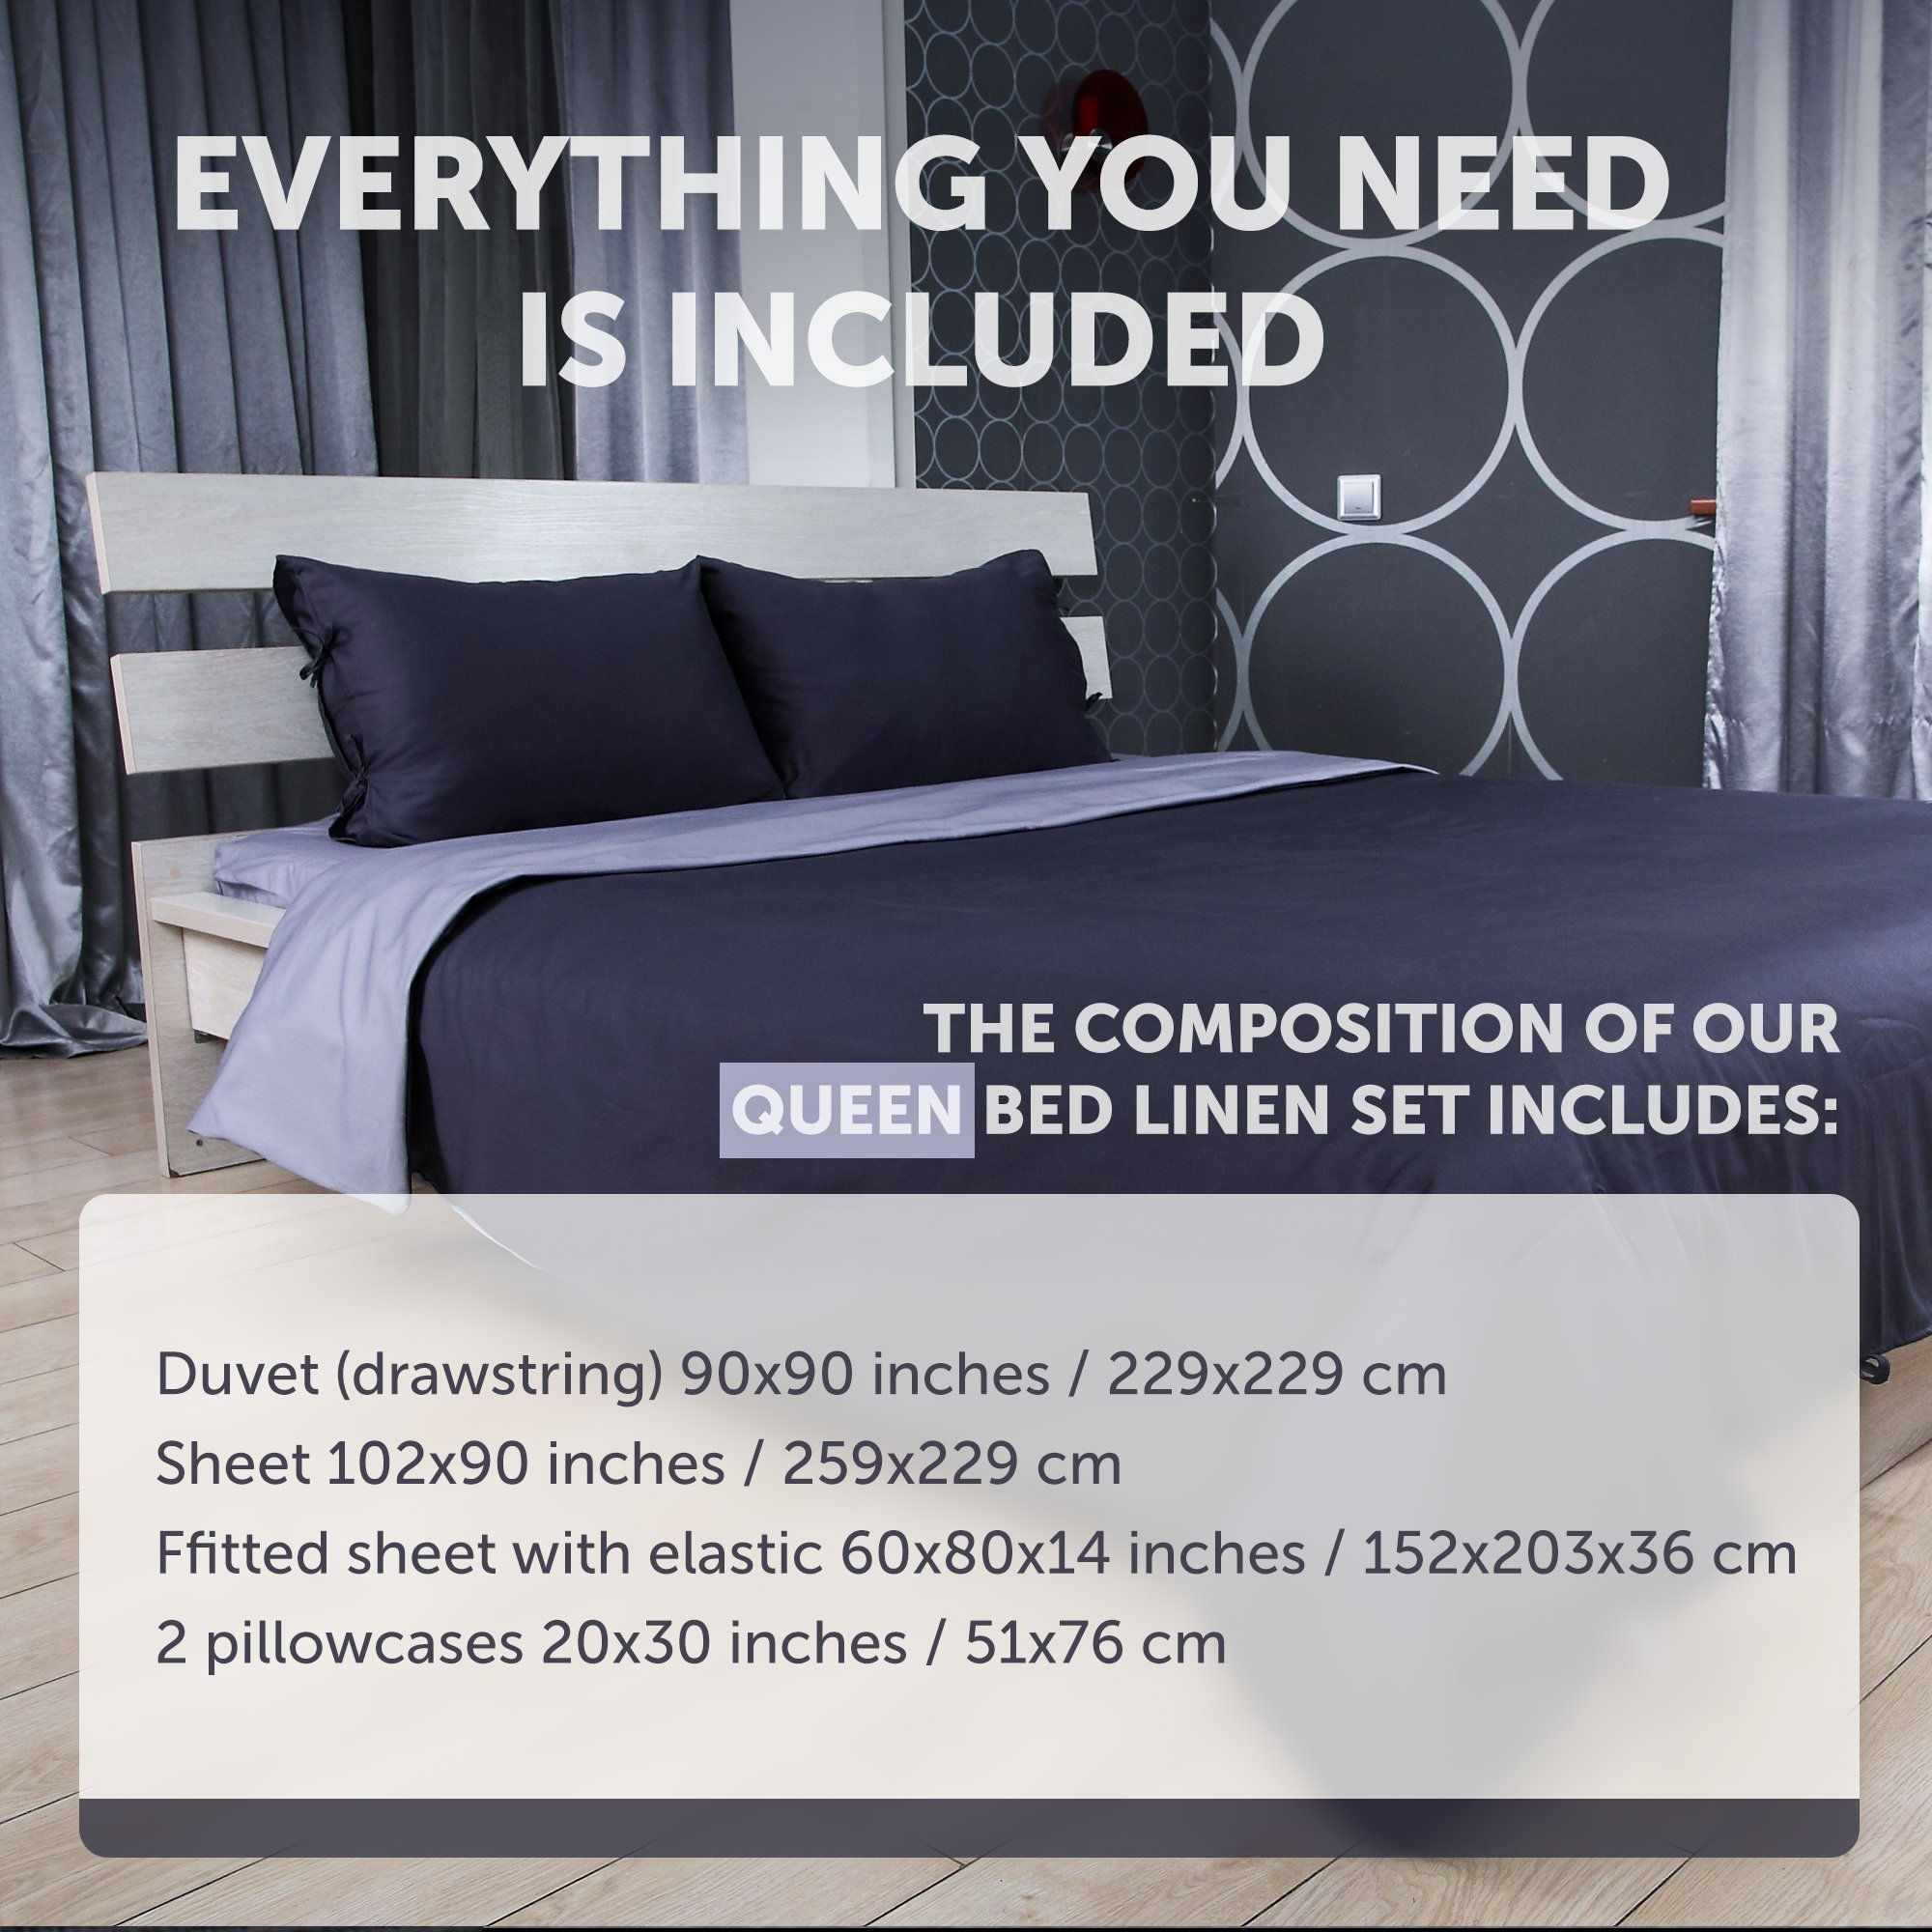 Cloudy Hugs Bed Linen Set – 100% Natural Textile: Sateen – & Comfortable for Sweet Dreams - 5 pc Set -Queen, Dark Gray/Light Gray by Cloudy Hugs (Image #2)